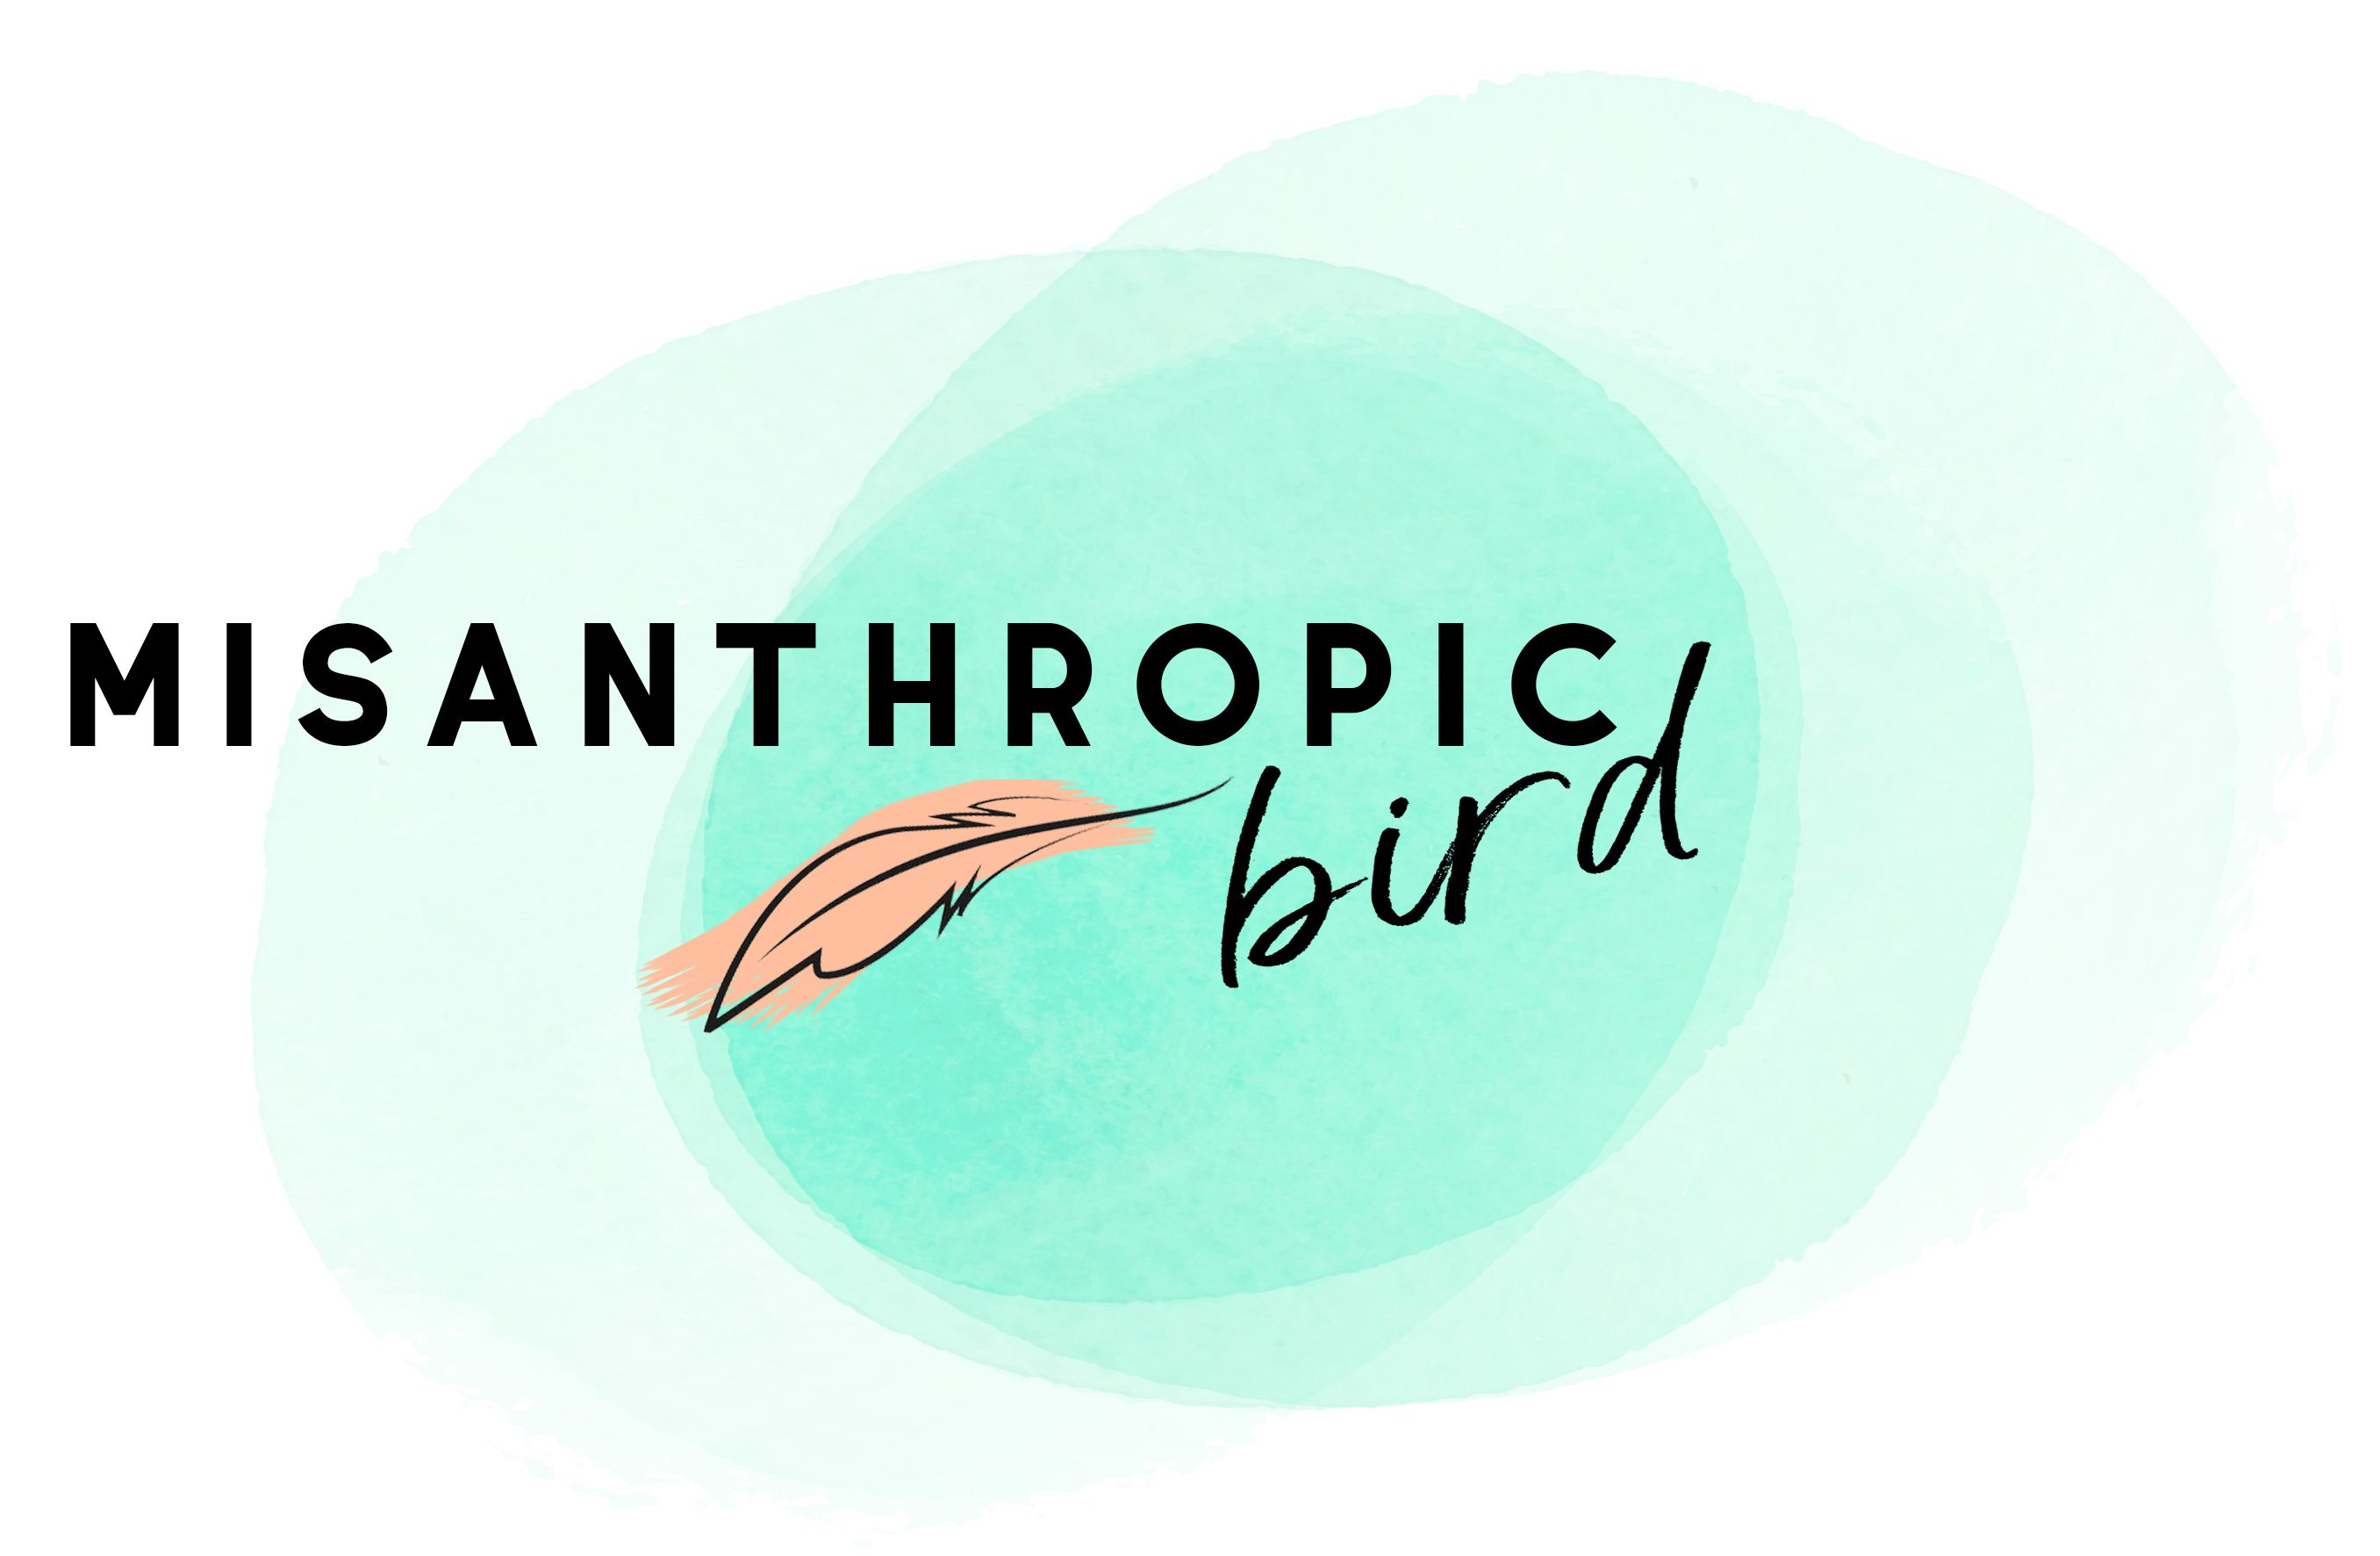 The Misanthropic Bird